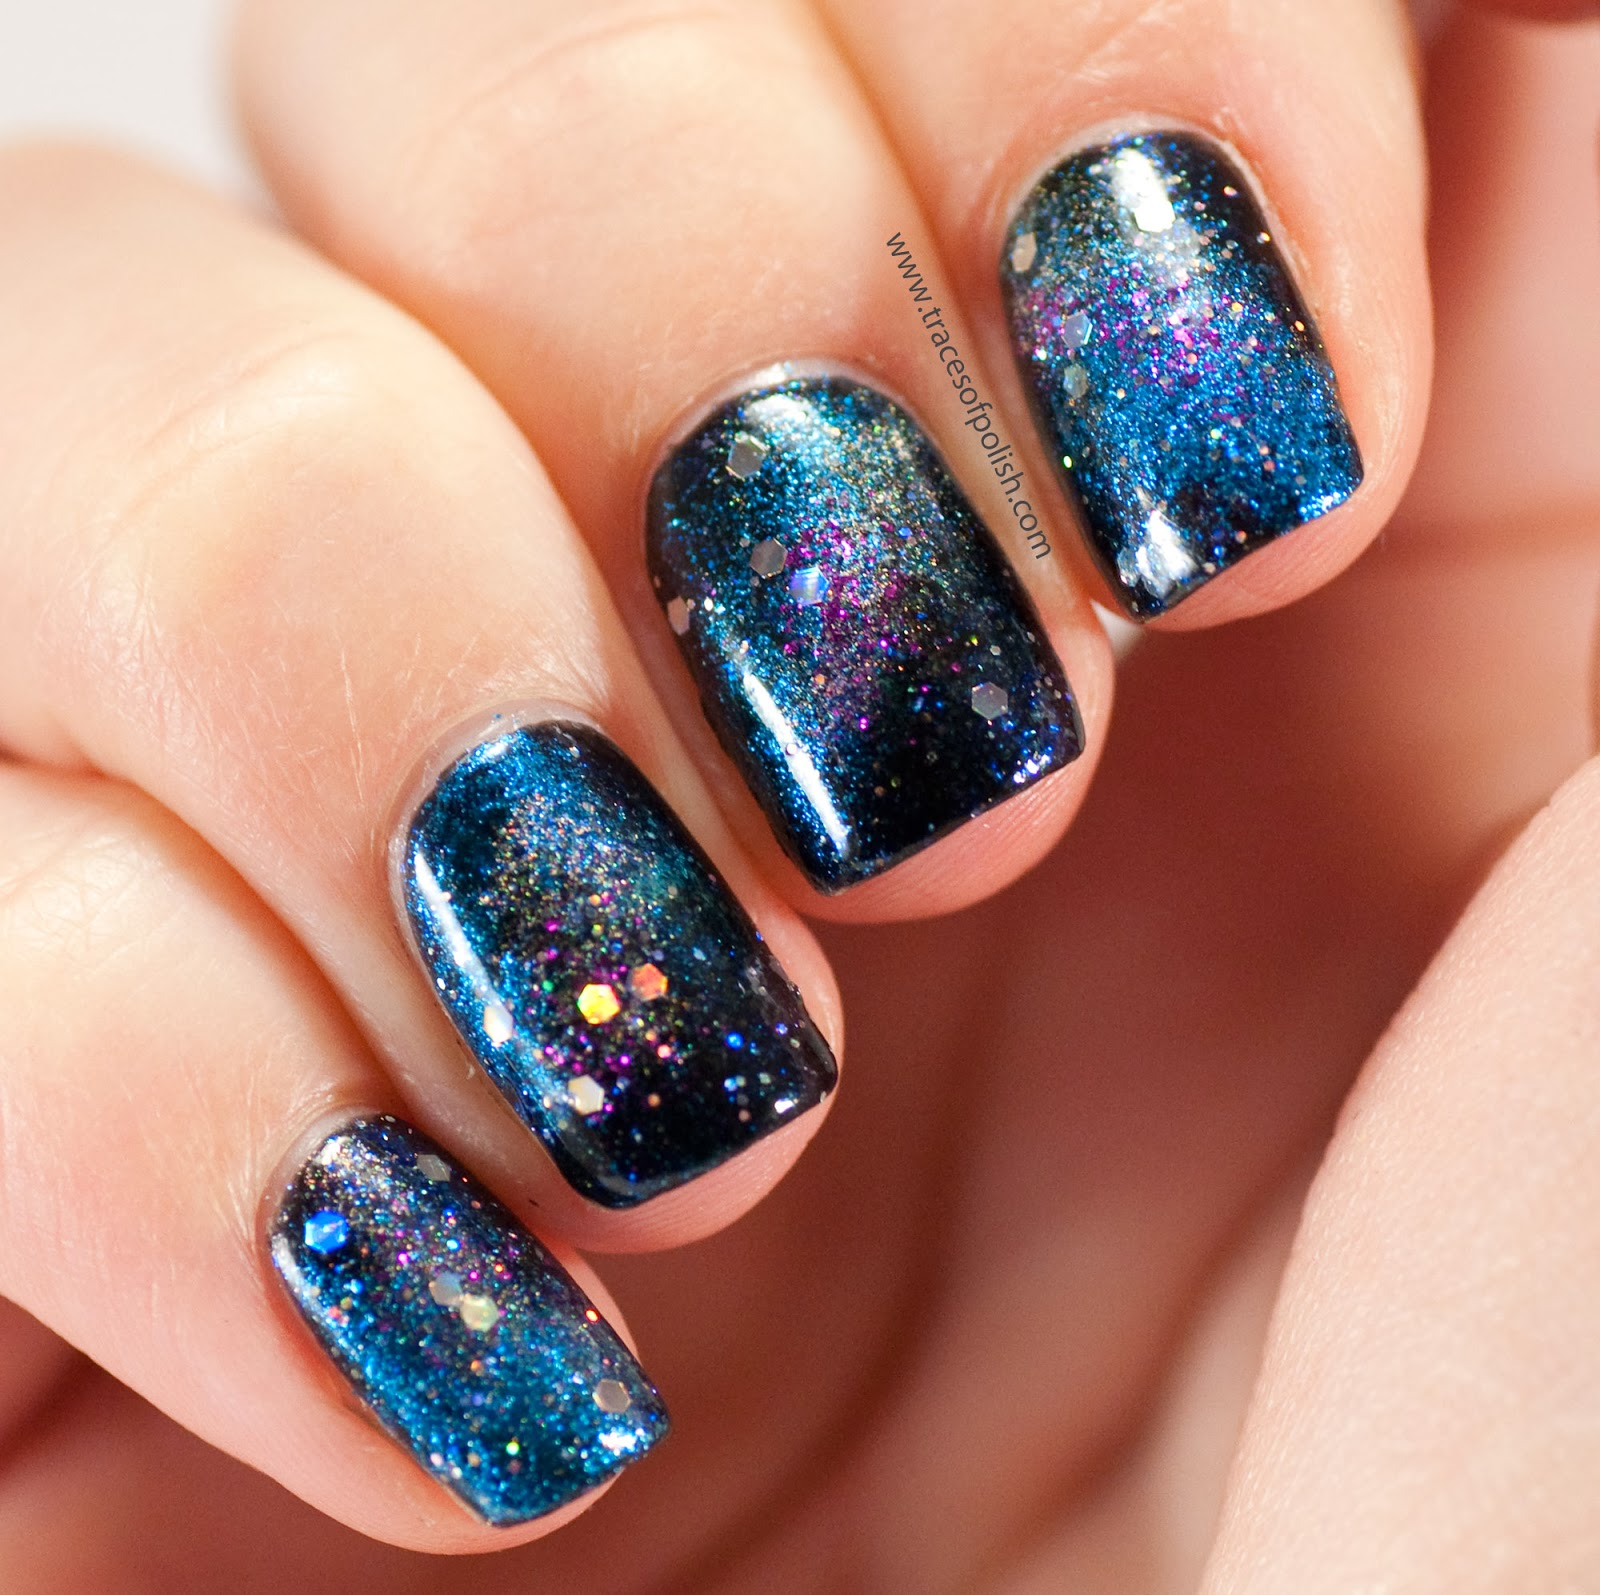 Simple Constellation Nail Art: Nail Art Sunday, Astrological Signs